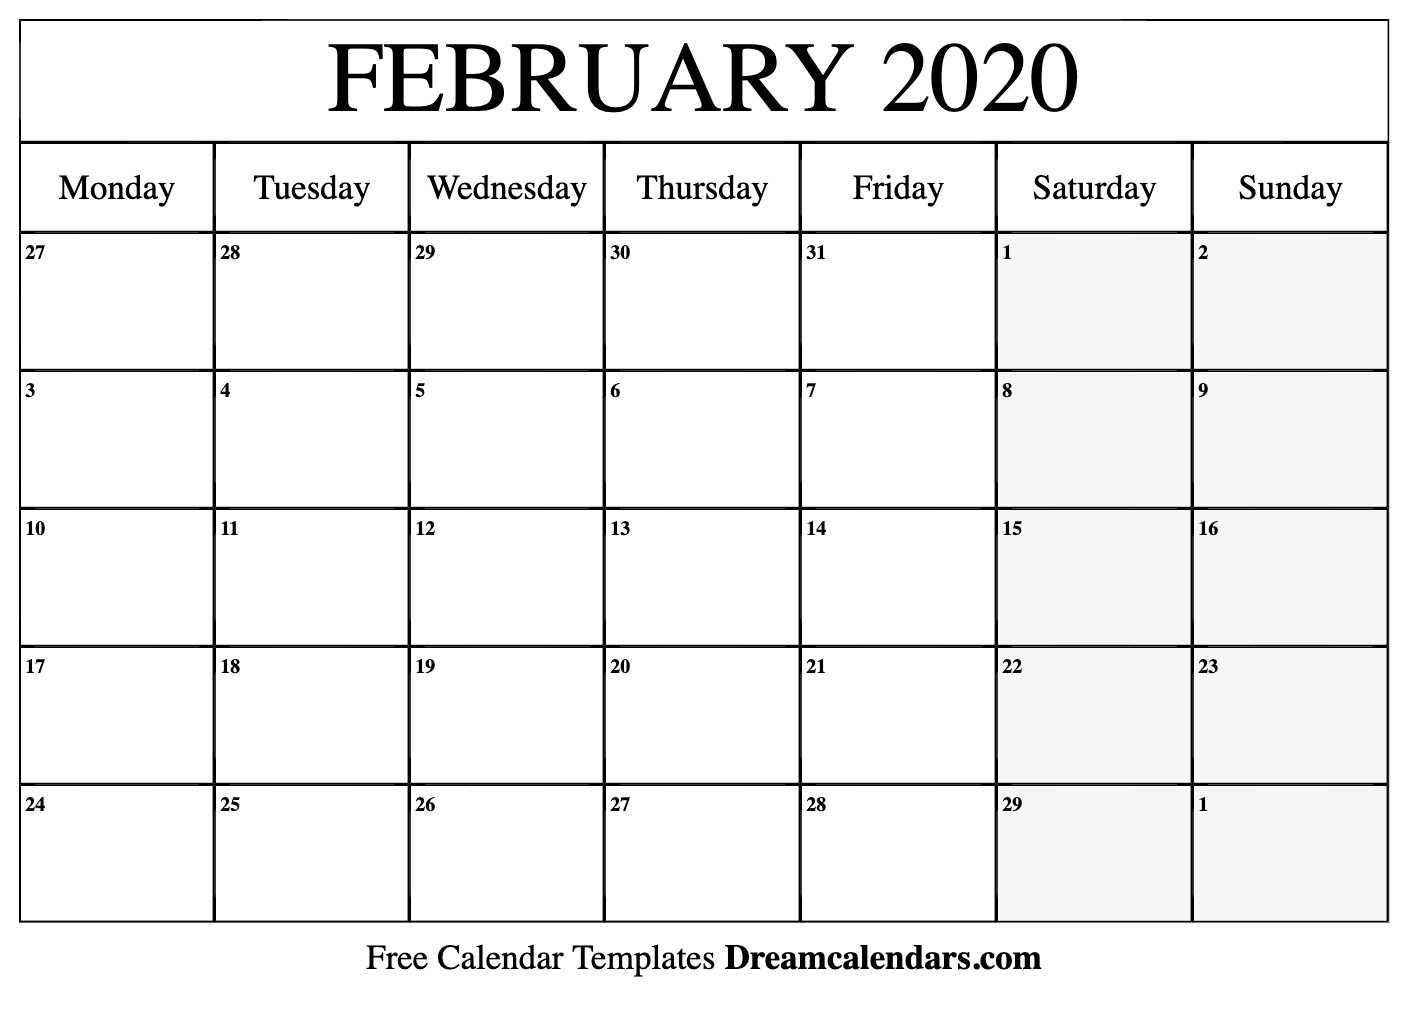 February Calendar Page 2020  Bolan.horizonconsulting.co within Feb 2020 Calendar